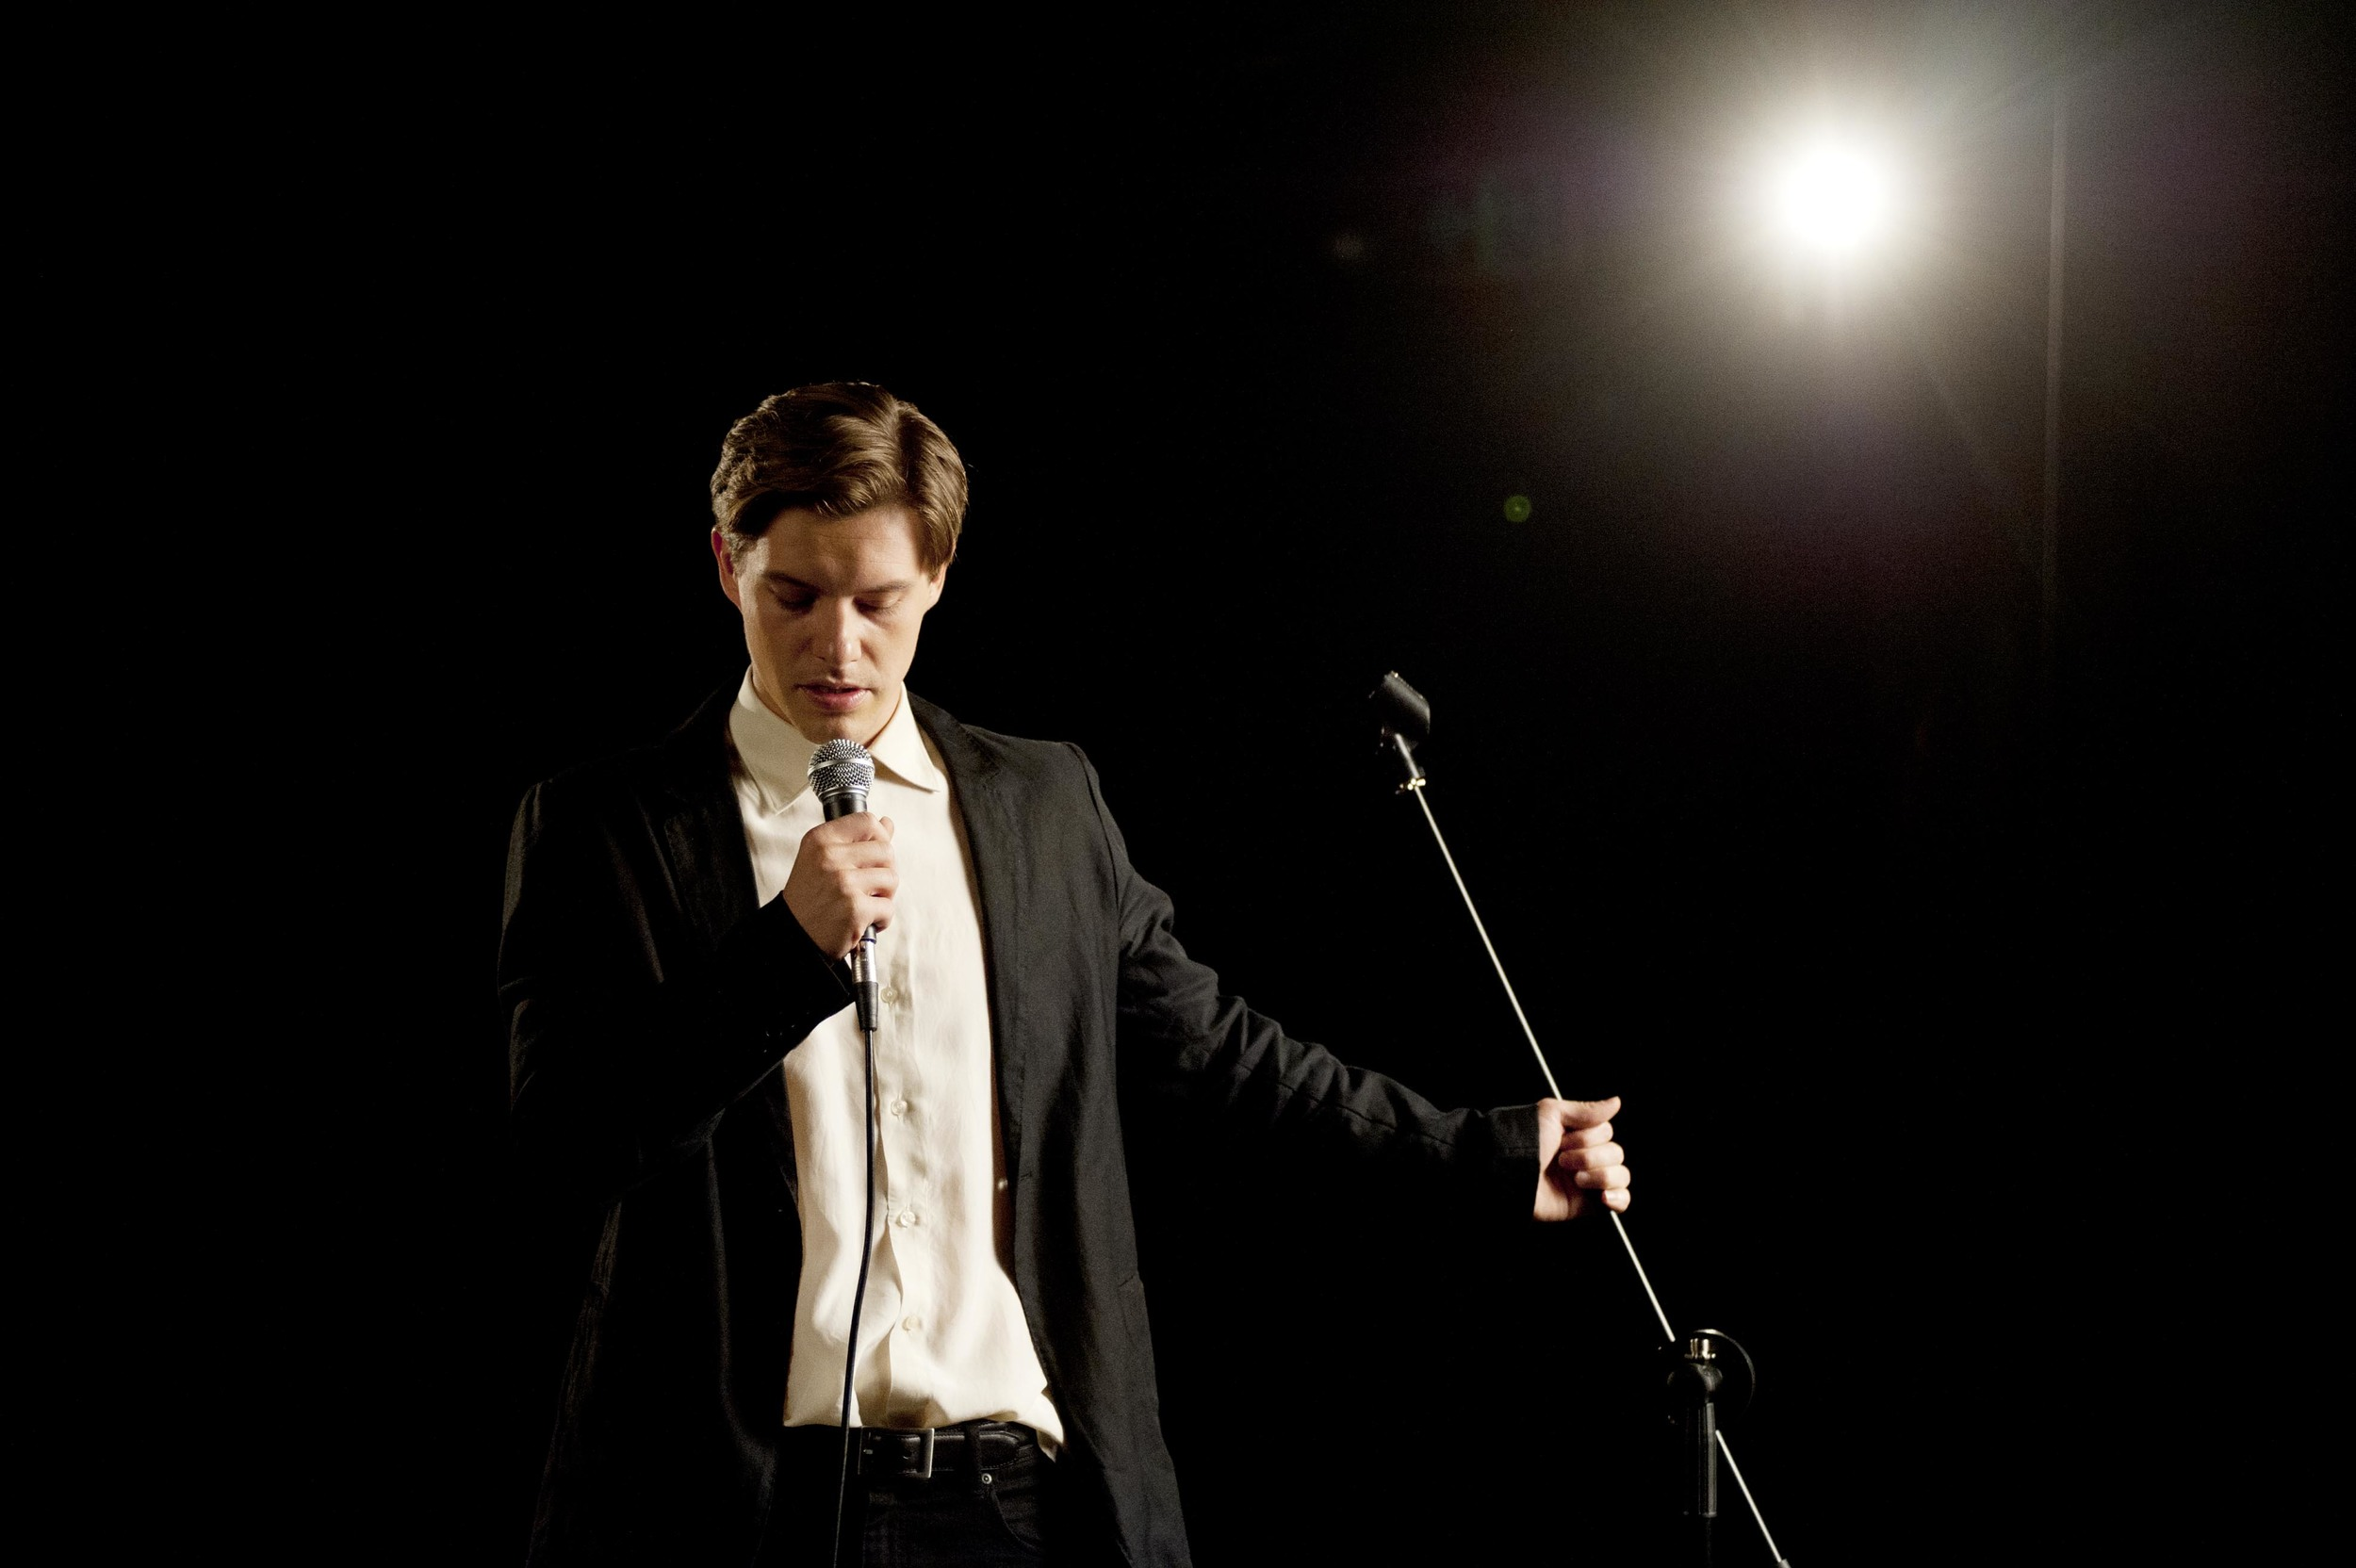 2. Xavier Samuel is OTTO BLOOM Boxing Day Speech The Death and Life of Otto Bloom photo by Suzy Wood.jpg